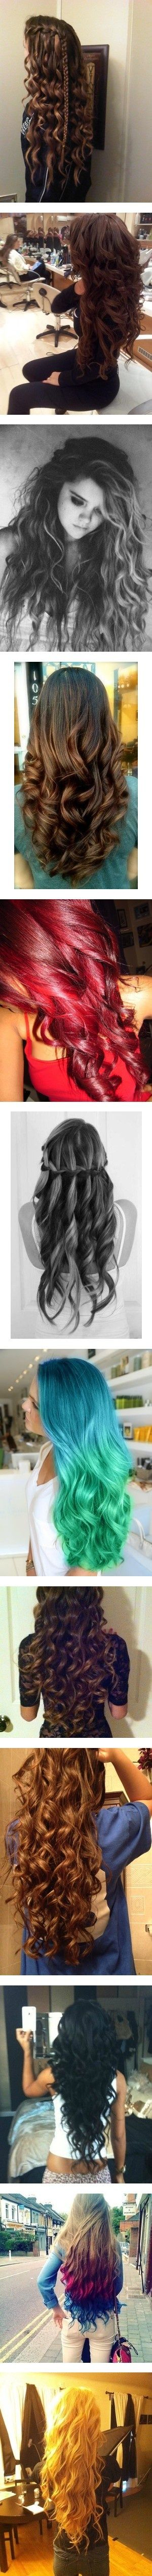 The best images about haairzzz on pinterest